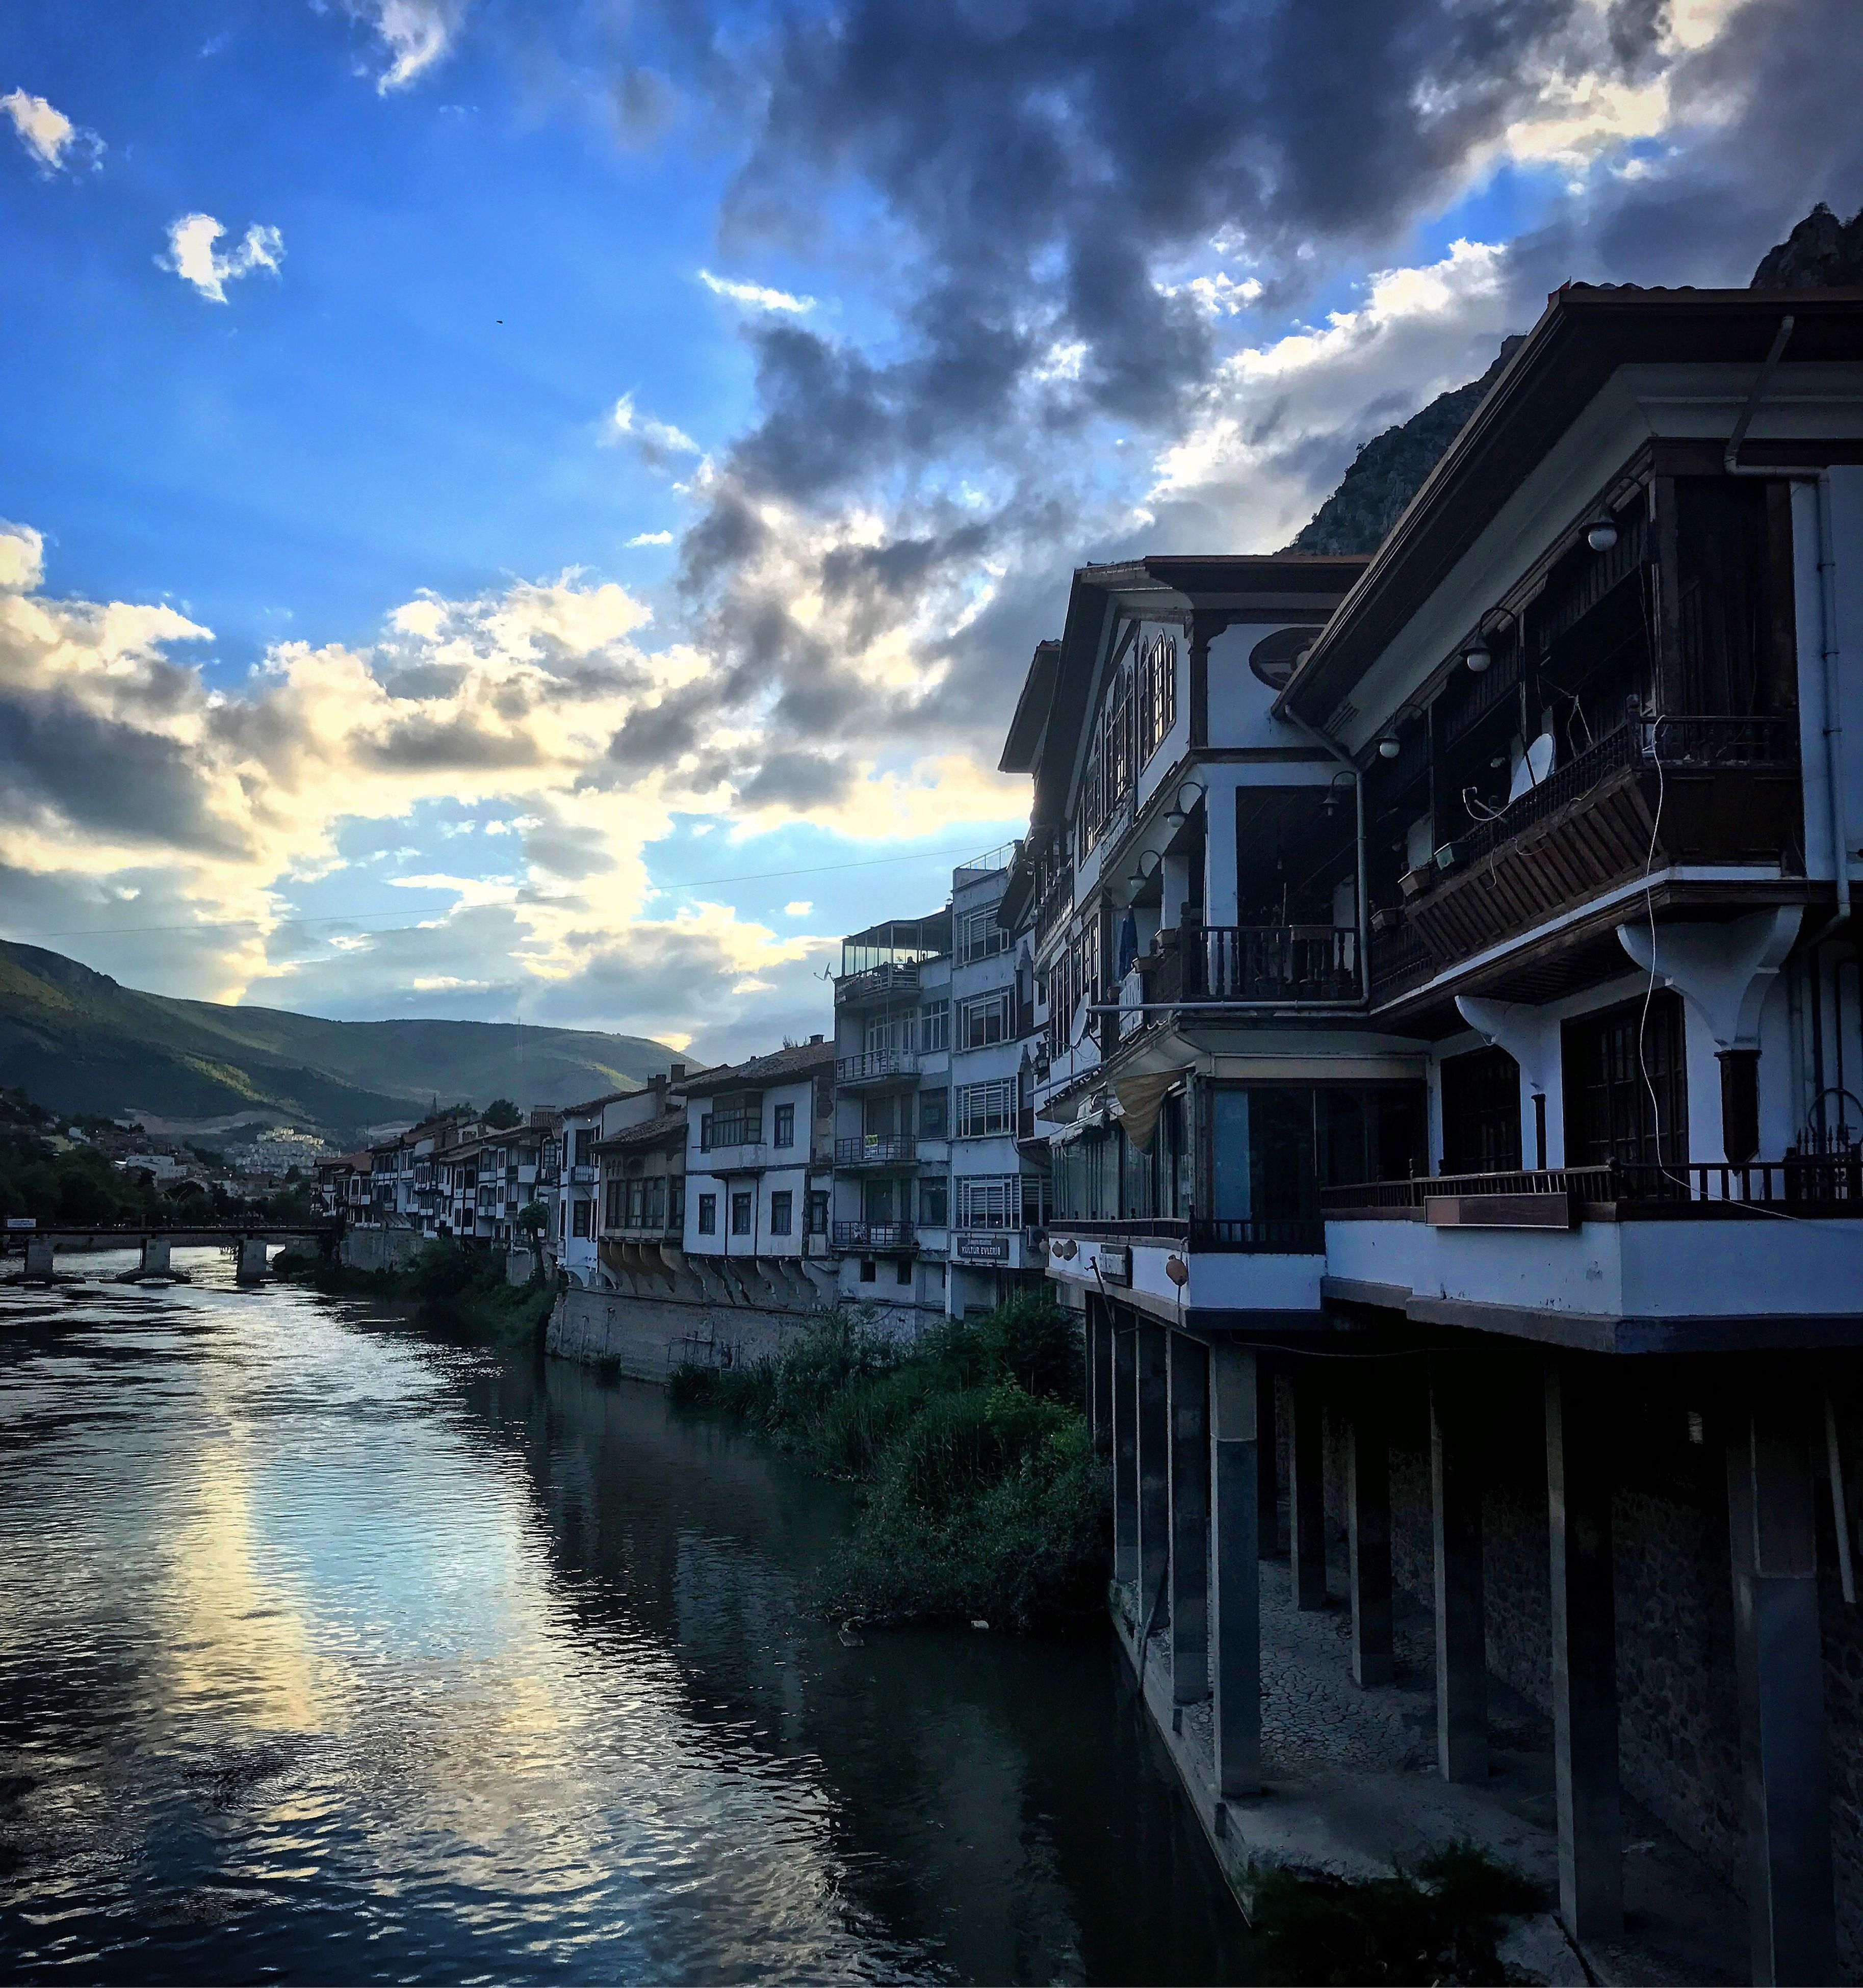 architecture, building exterior, built structure, cloud - sky, sky, house, outdoors, water, residential building, no people, day, river, mountain, nature, scenics, city, beauty in nature